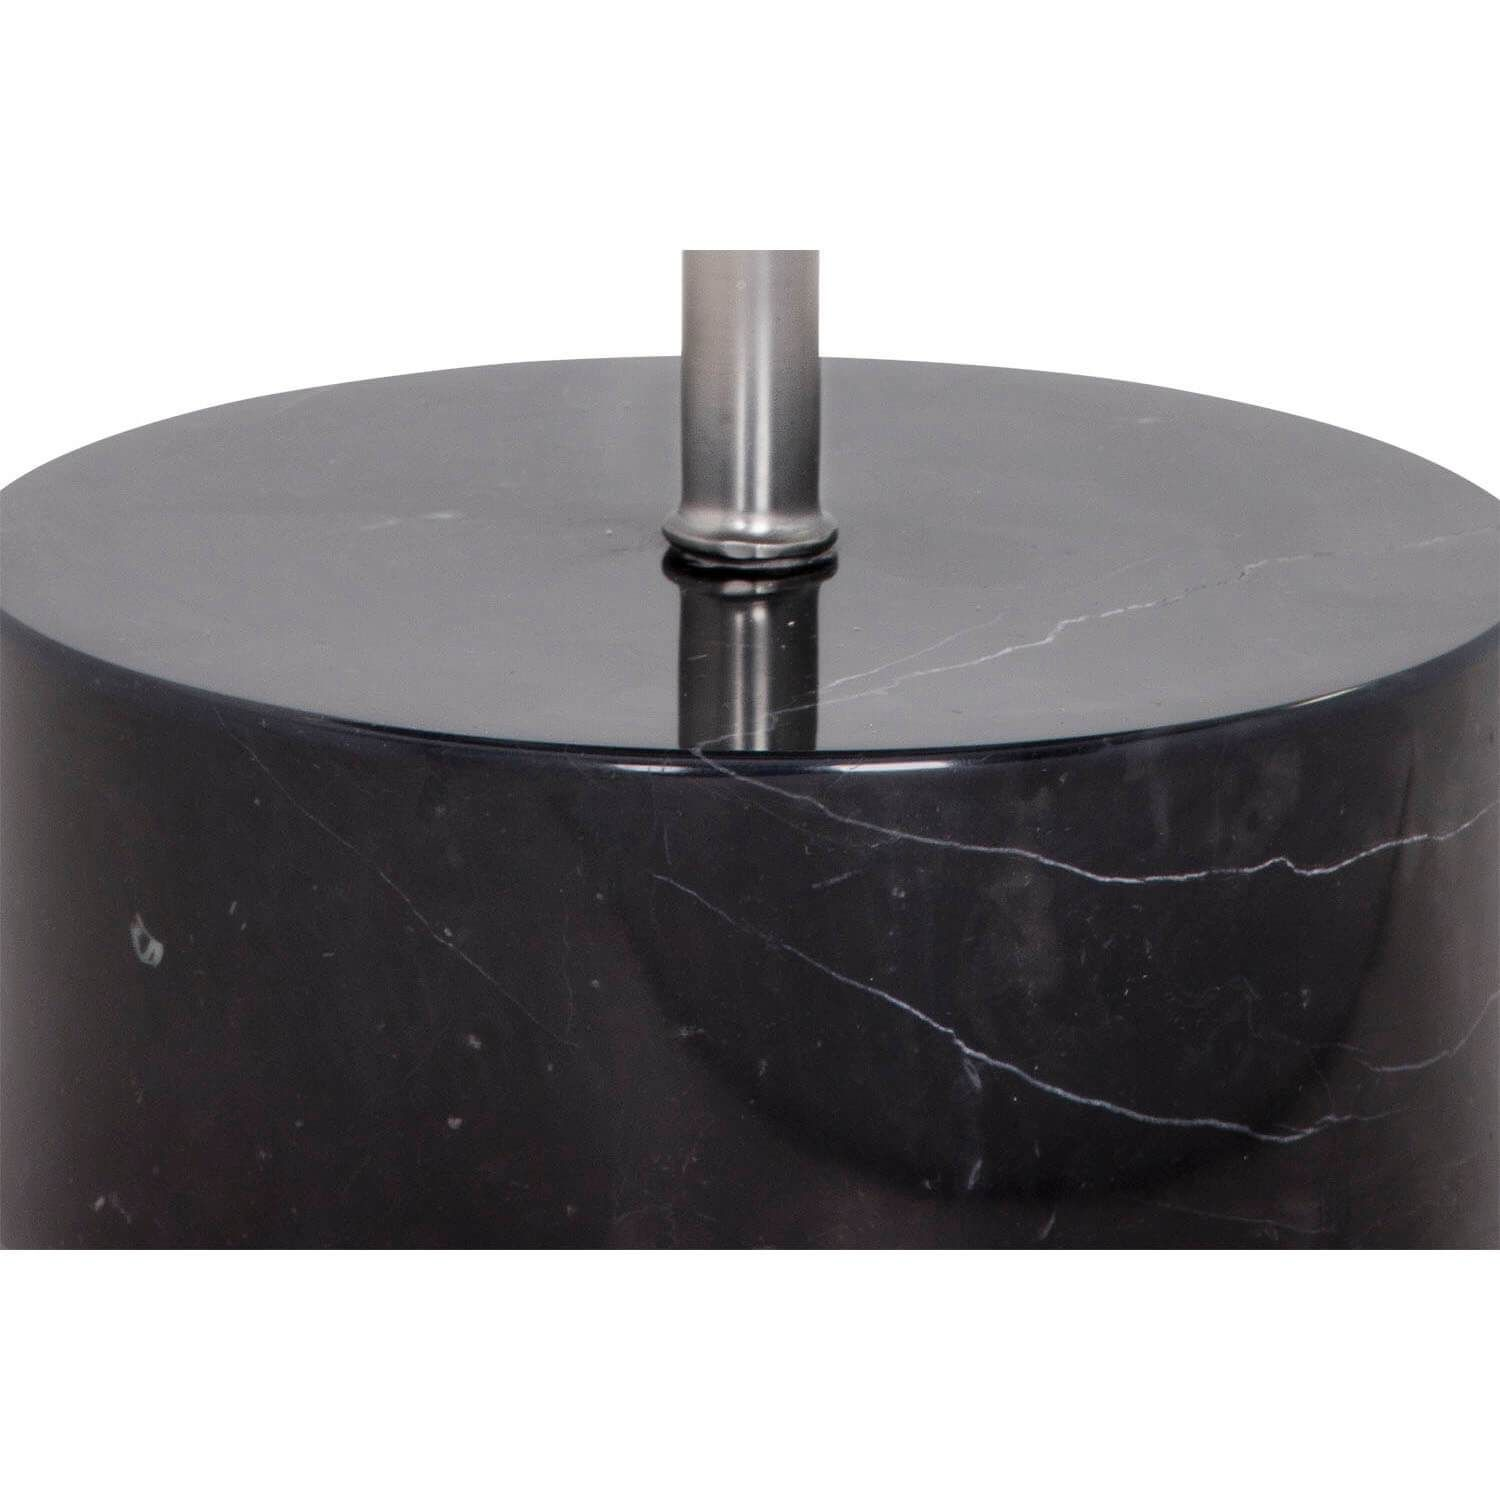 You cannot be without elegance and style when designing your space. Our Milano Side Table combines marble and stainless steel to create a beautiful piece.